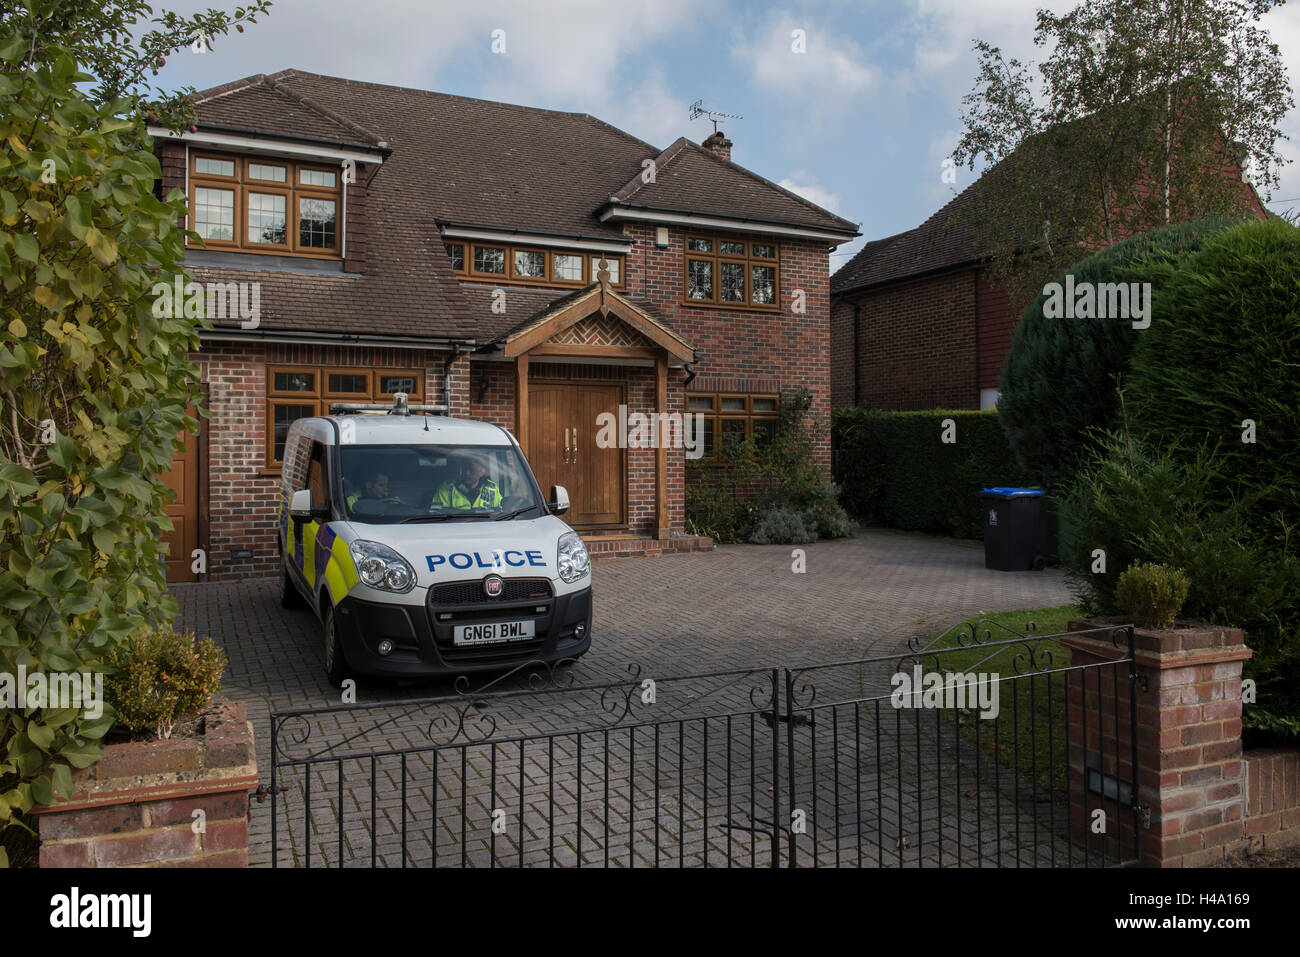 Gerrards Cross, Buckinghamshire, UK. 14th October 2016. Police vehicles and forensic unit at the scene. At around - Stock Image